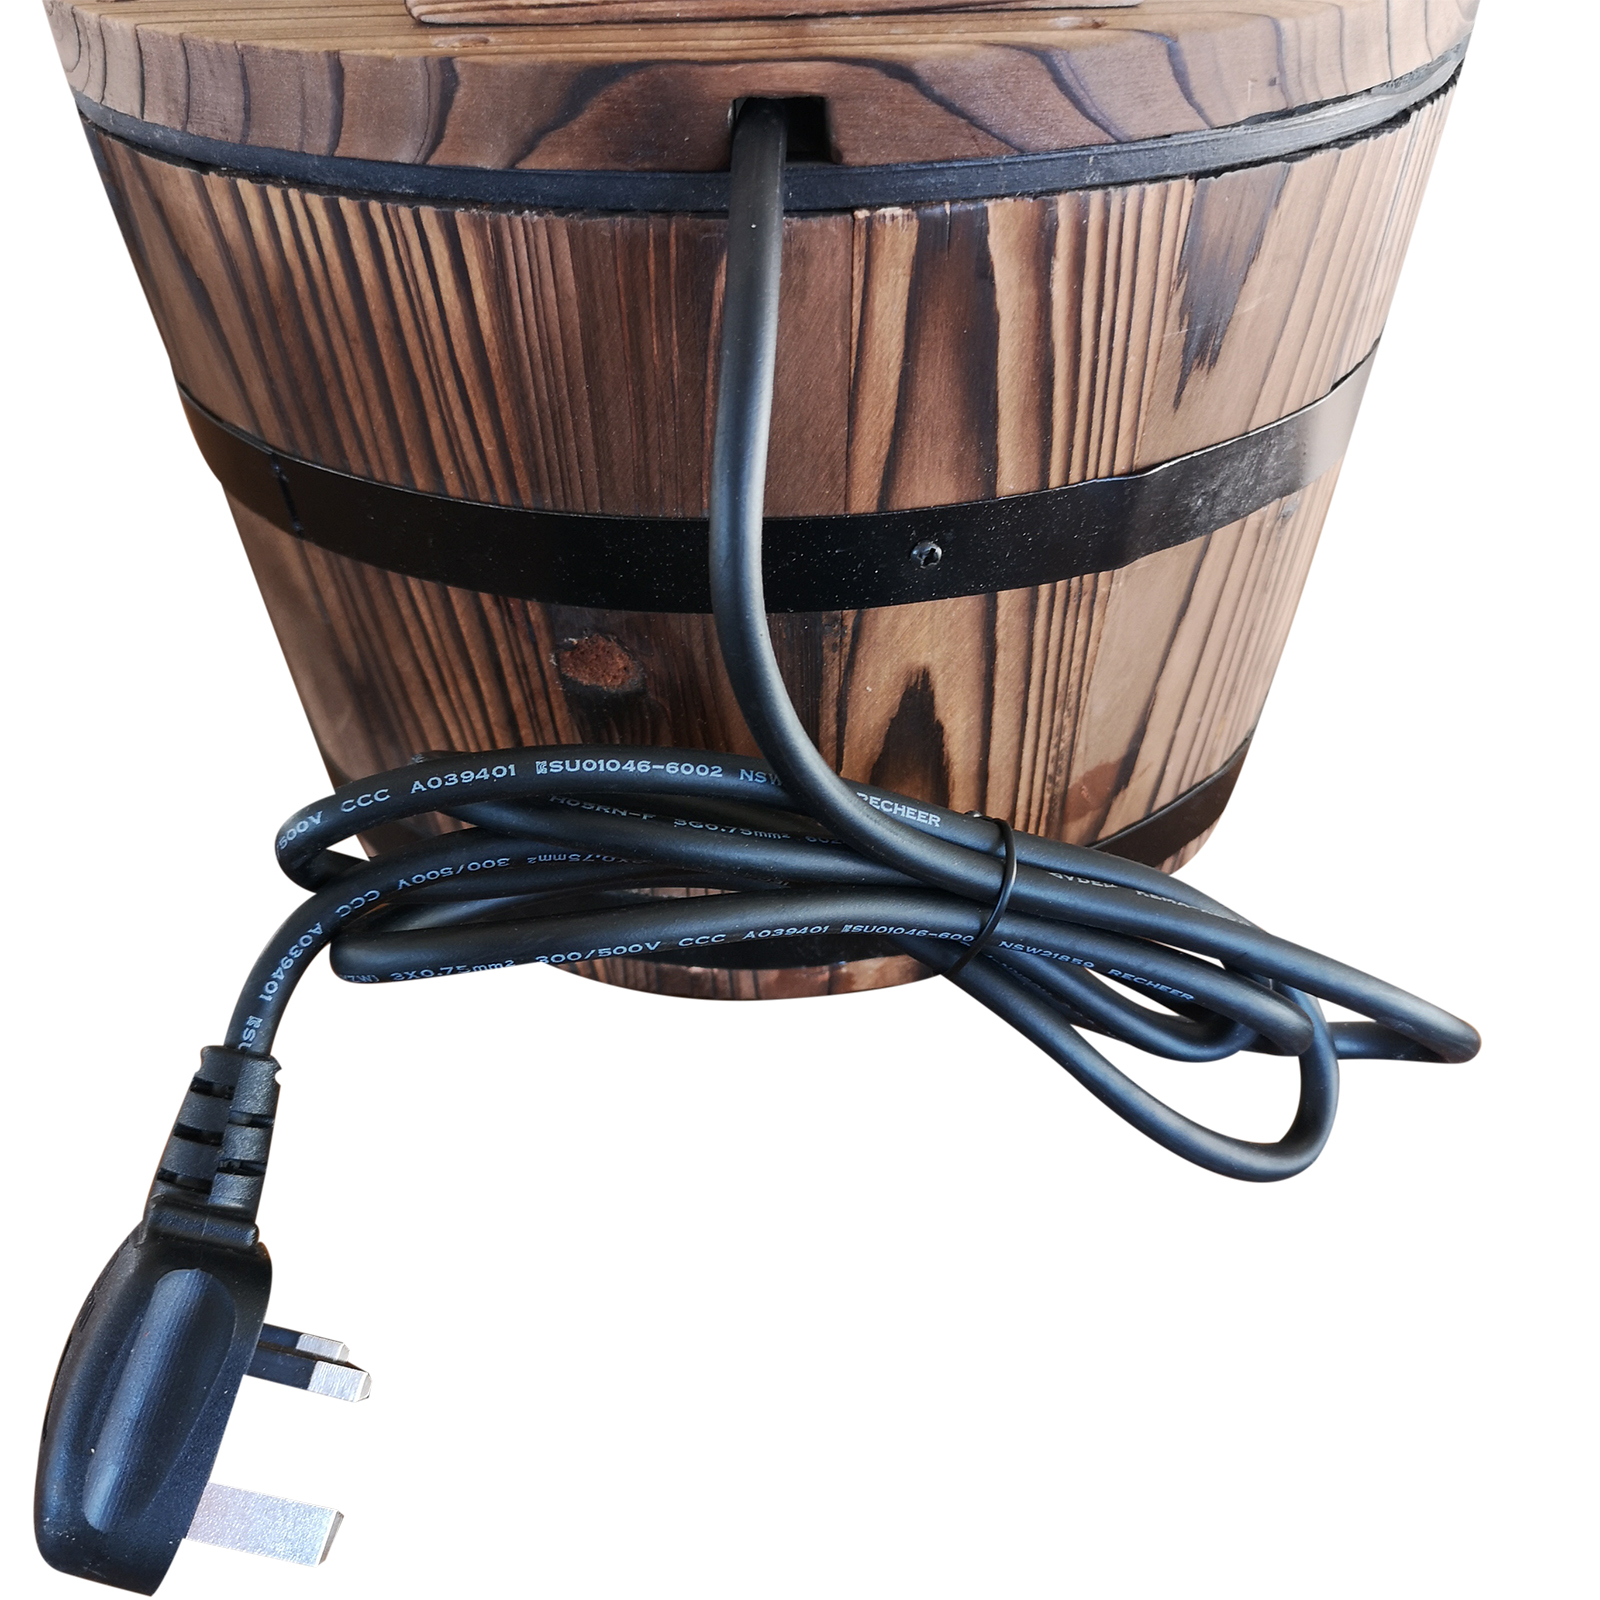 Details about Outsunny Garden Wood Barrel Pump Patio Electric Water  Fountain Deck Feature New